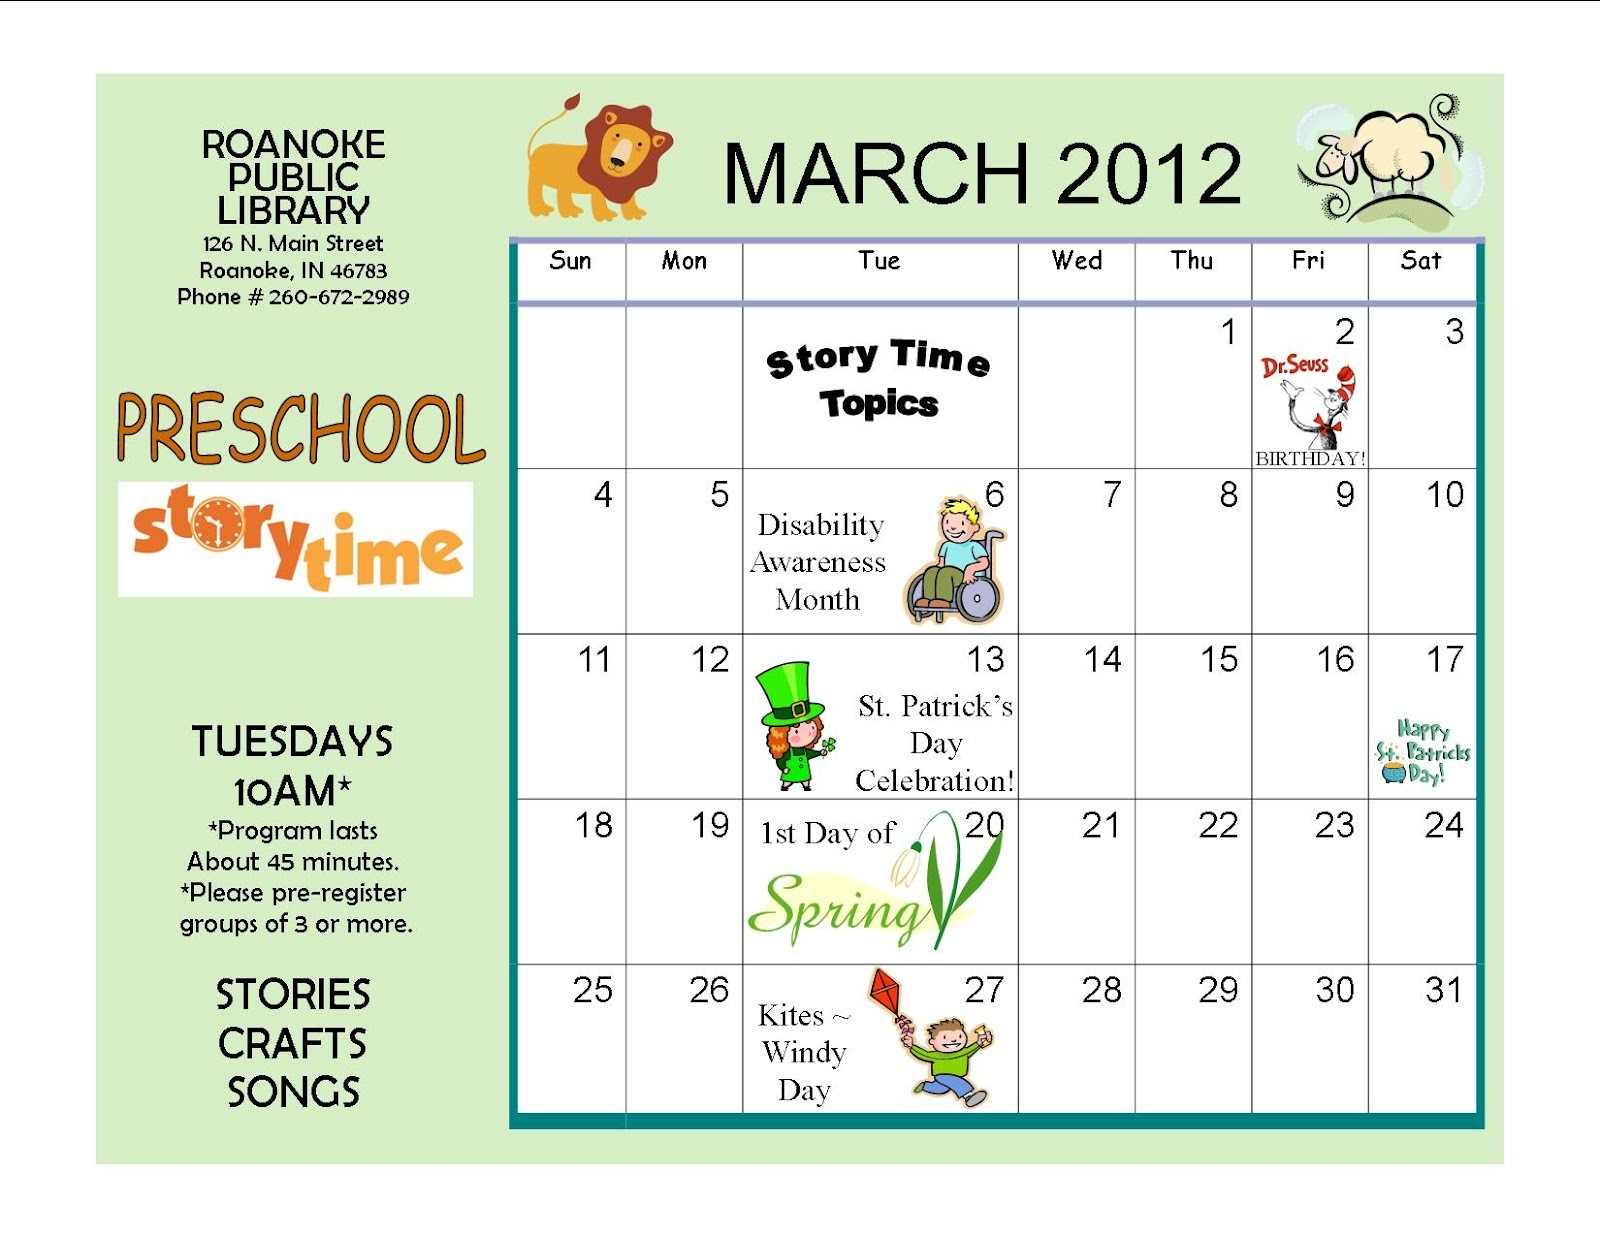 March Calendar for Kids Recientes Preschool Calendar Template Lara Expolicenciaslatam Of March Calendar for Kids Recientes Preschool Calendar Template Lara Expolicenciaslatam